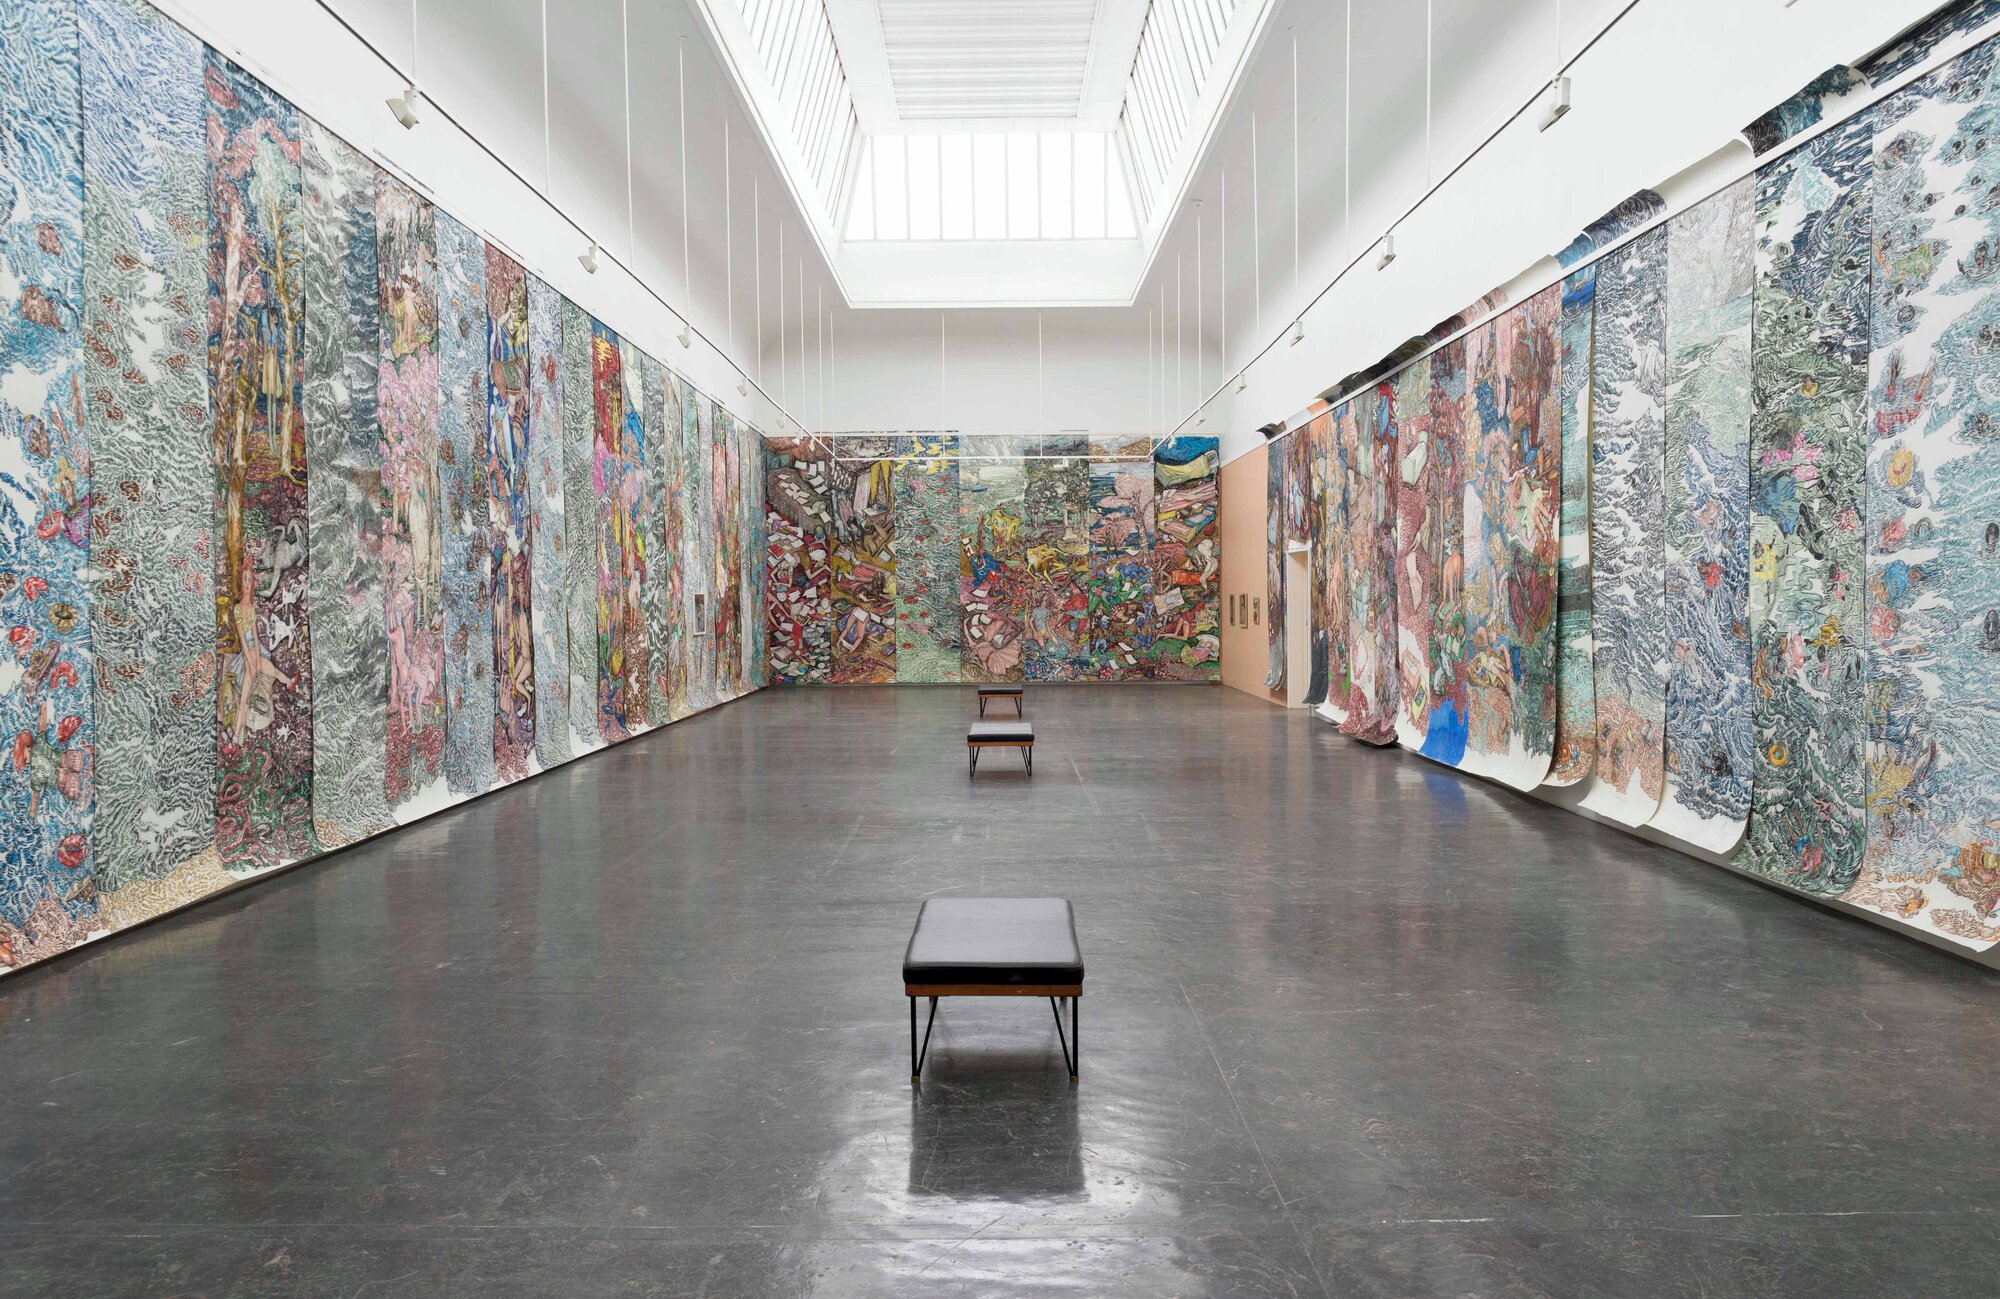 You Are Something Else (2017) by Vanessa Baird.  Soft pastels on printing paper, each 400 x 124 cm (157,48 x 48,81 inches) Installation view from Kunstnernes Hus. Photo courtesy of: Kristina Leithe / Kunstnernes Hus